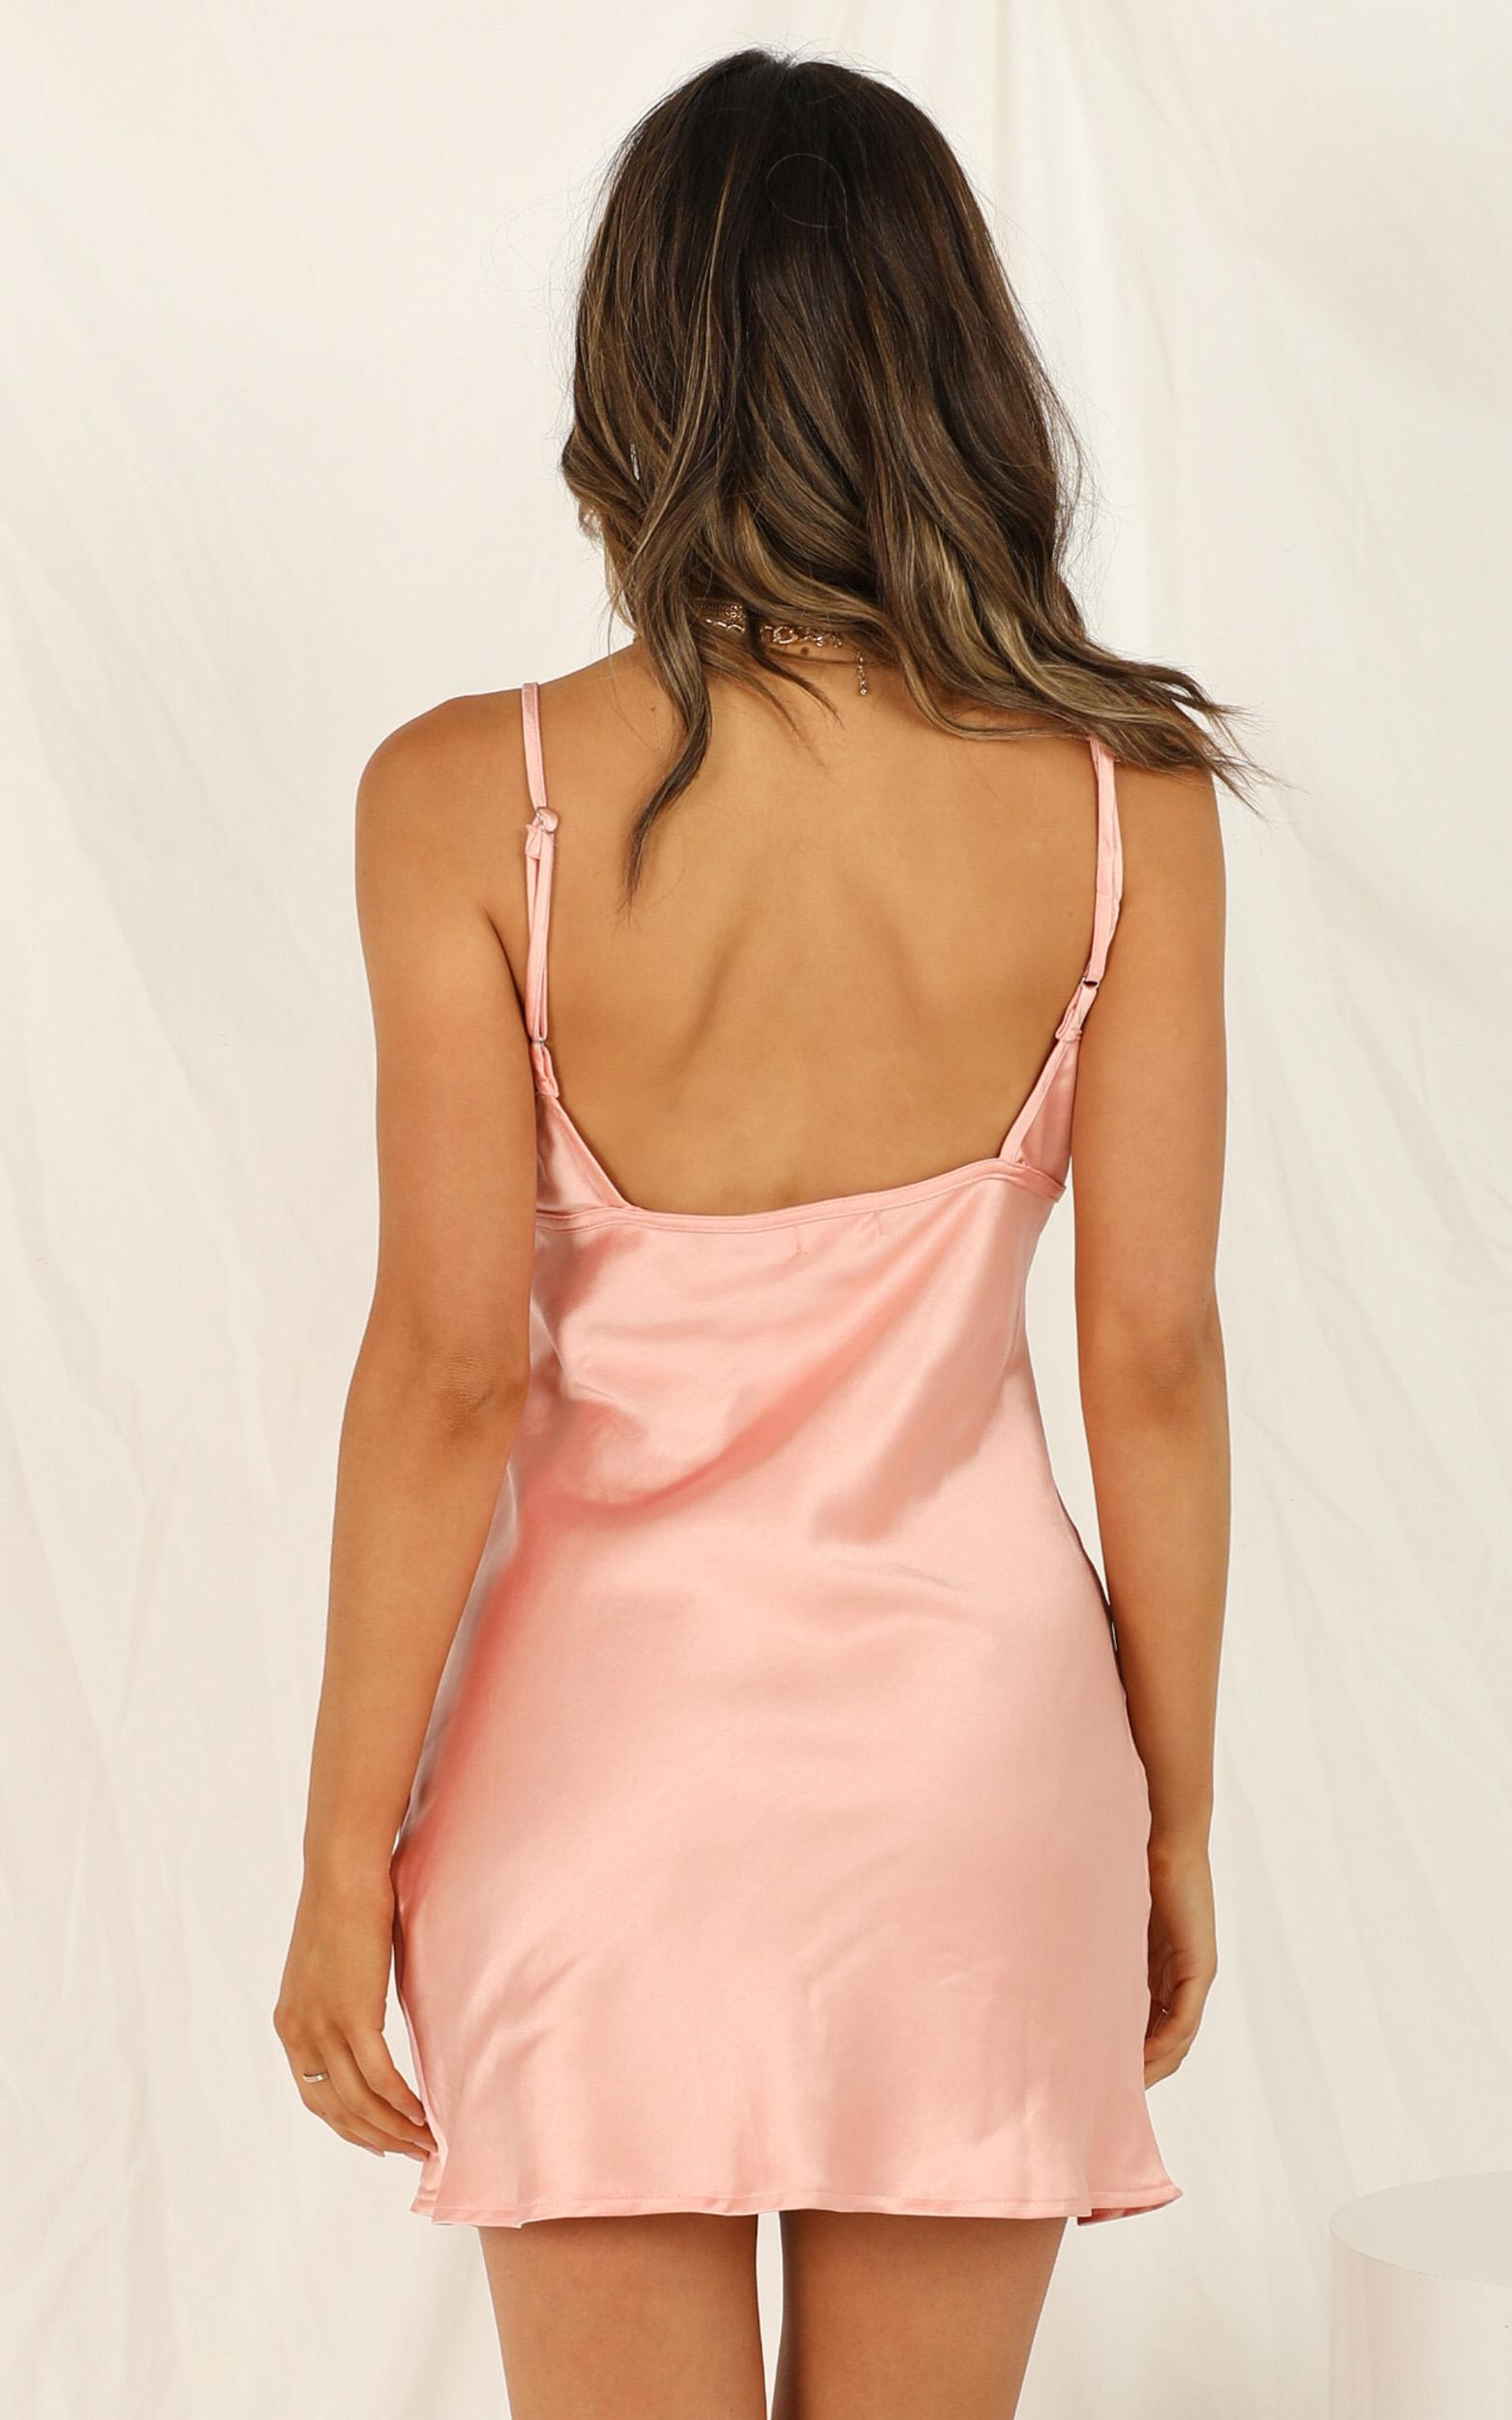 Stay In Line dress in peach satin - 12 (L), Blush, hi-res image number null